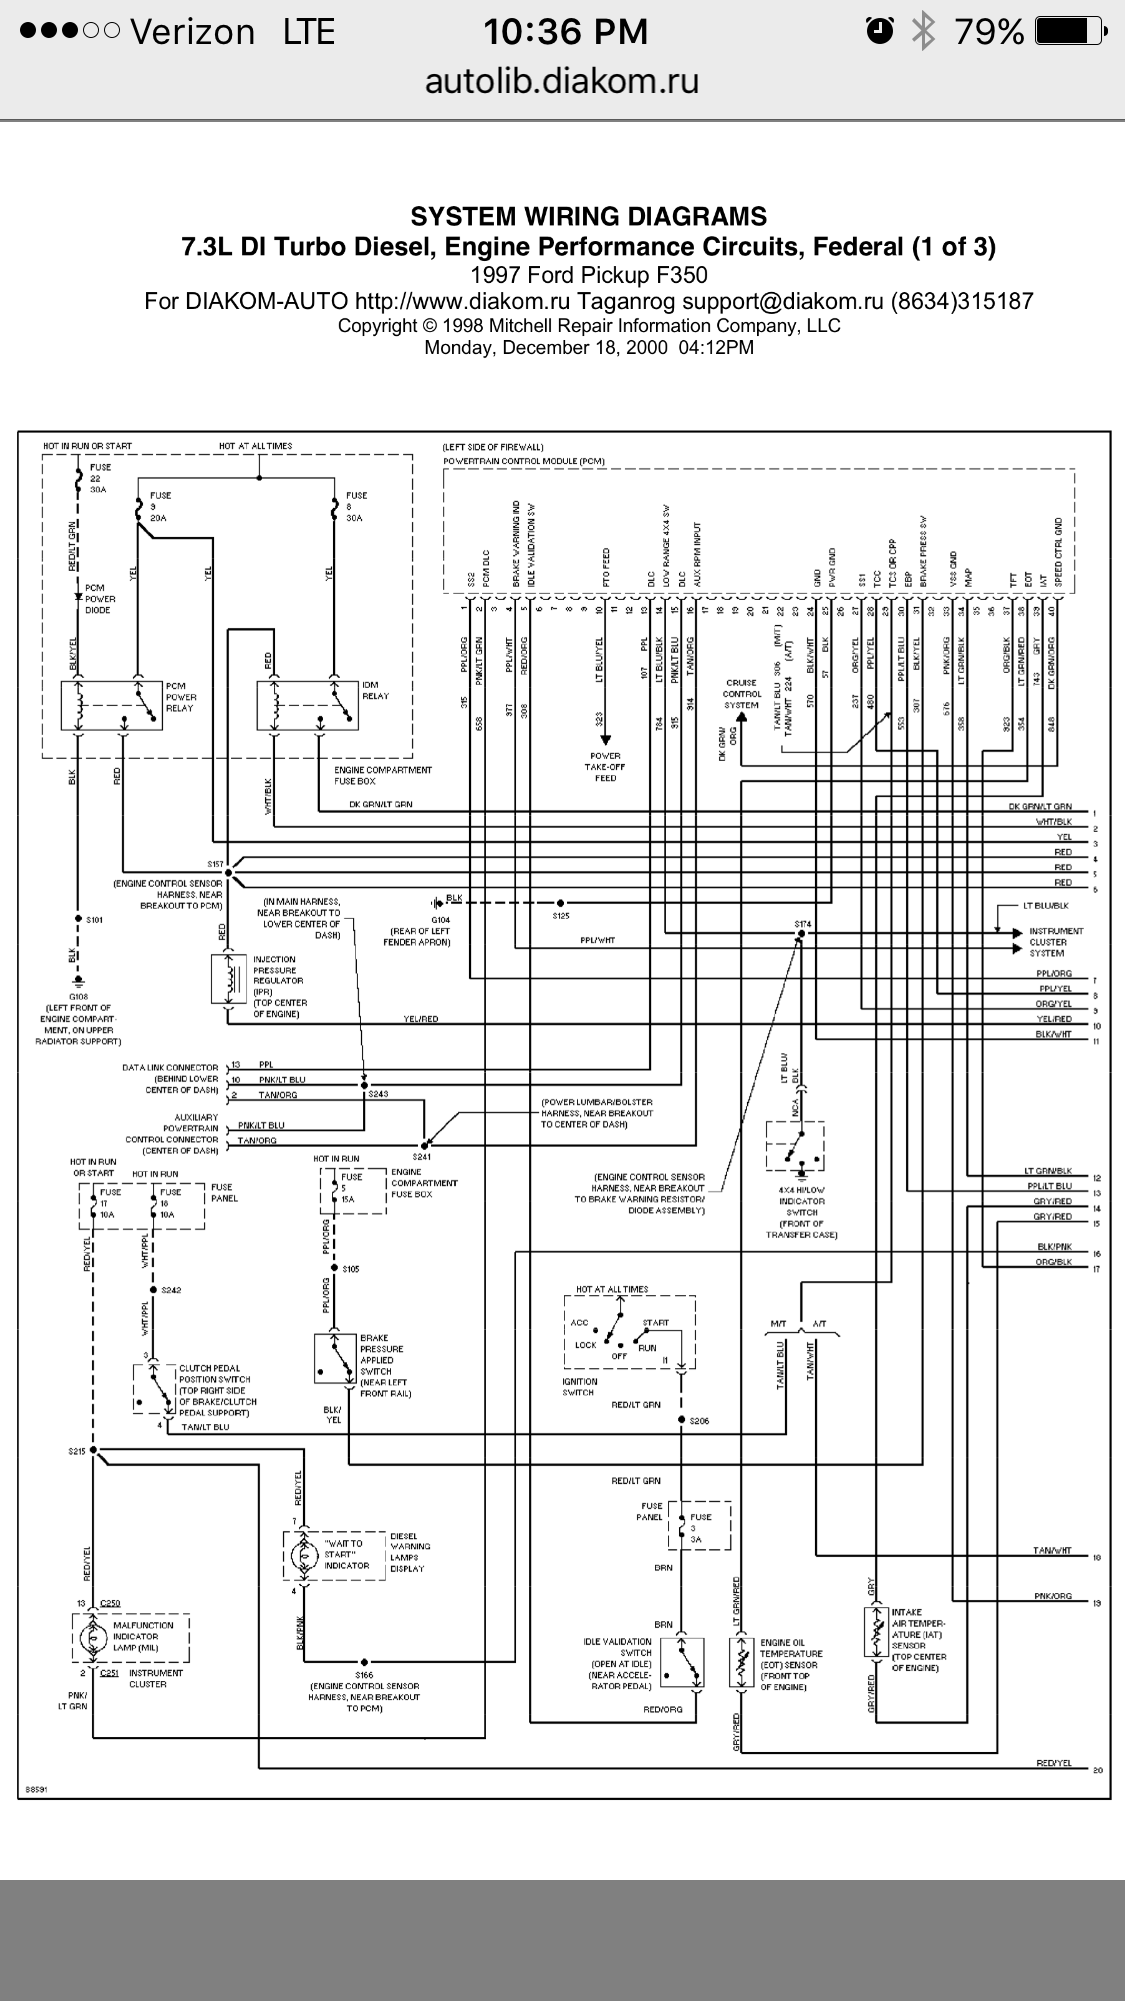 2001 Ford F550 Wiring Diagram 73l Wiring Schematic Printable Very